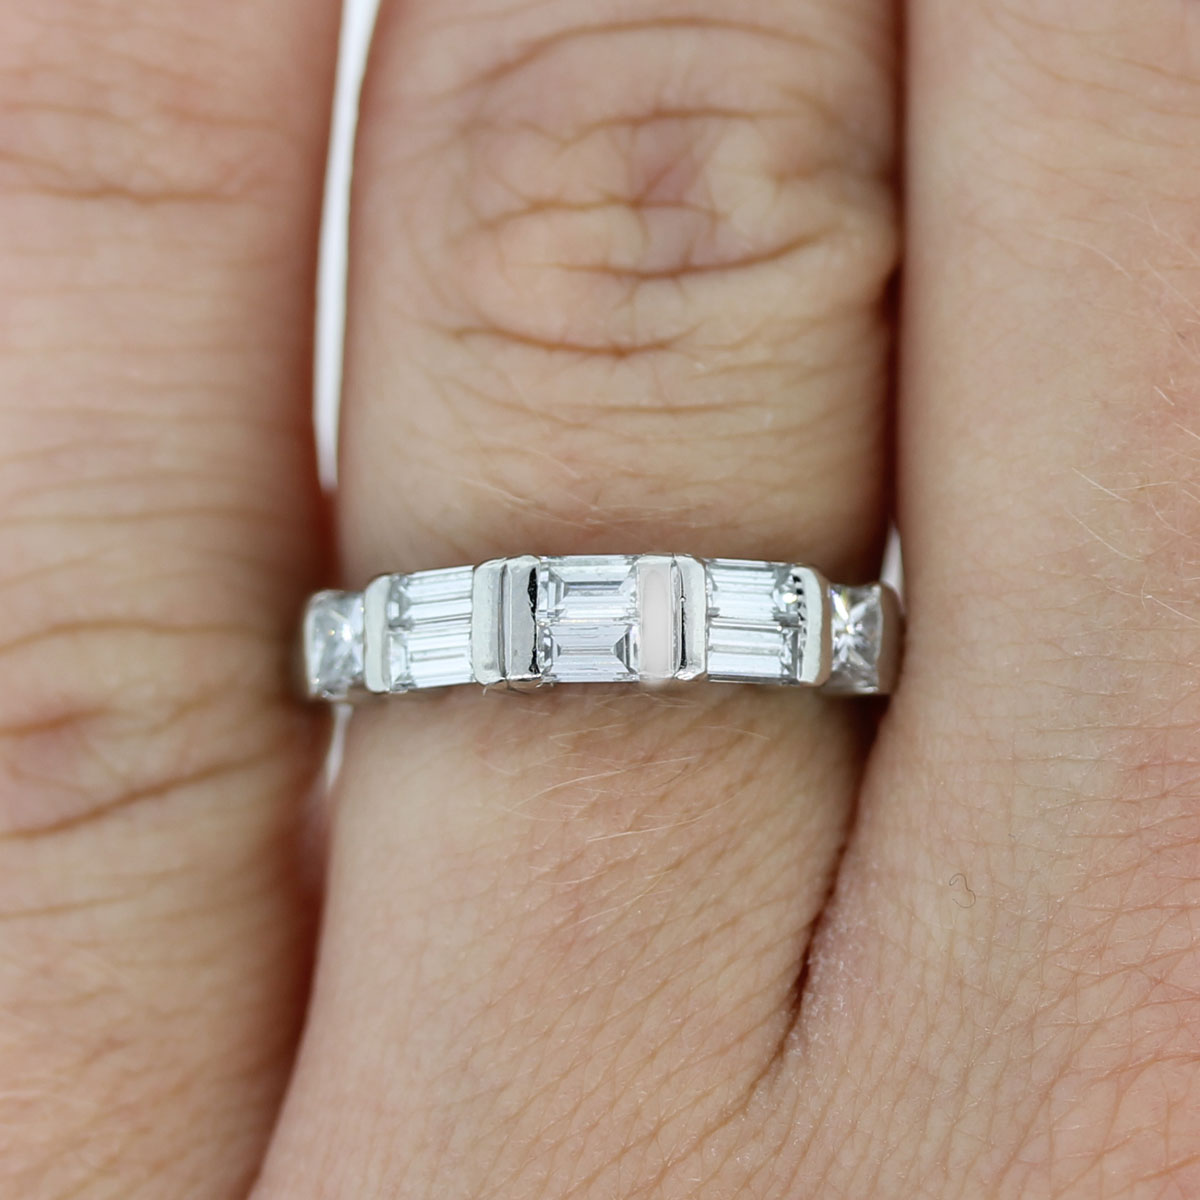 platinum princess cut baguette diamond wedding band ring